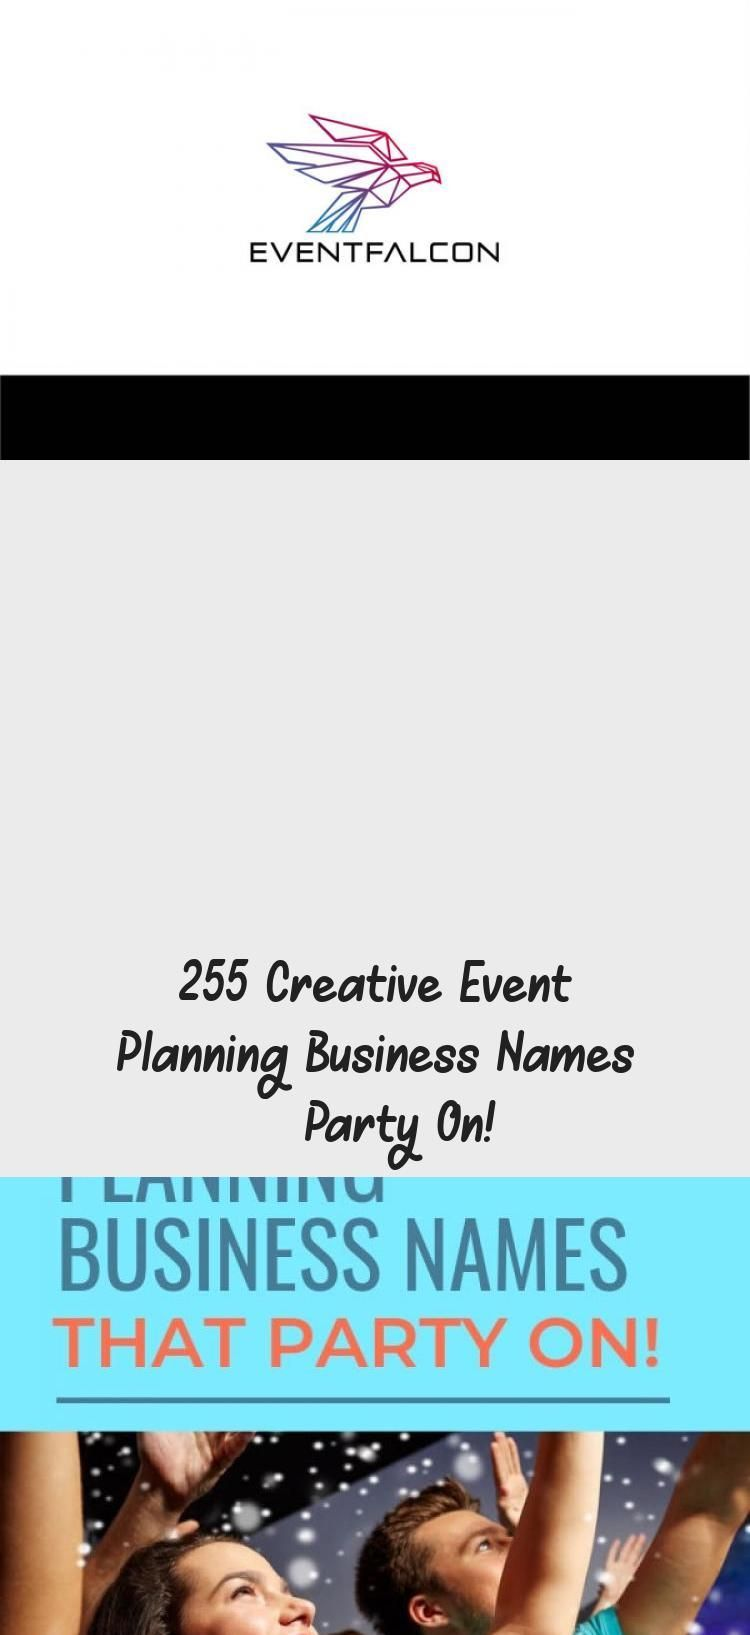 255 Creative Event Planning Business Names Party On